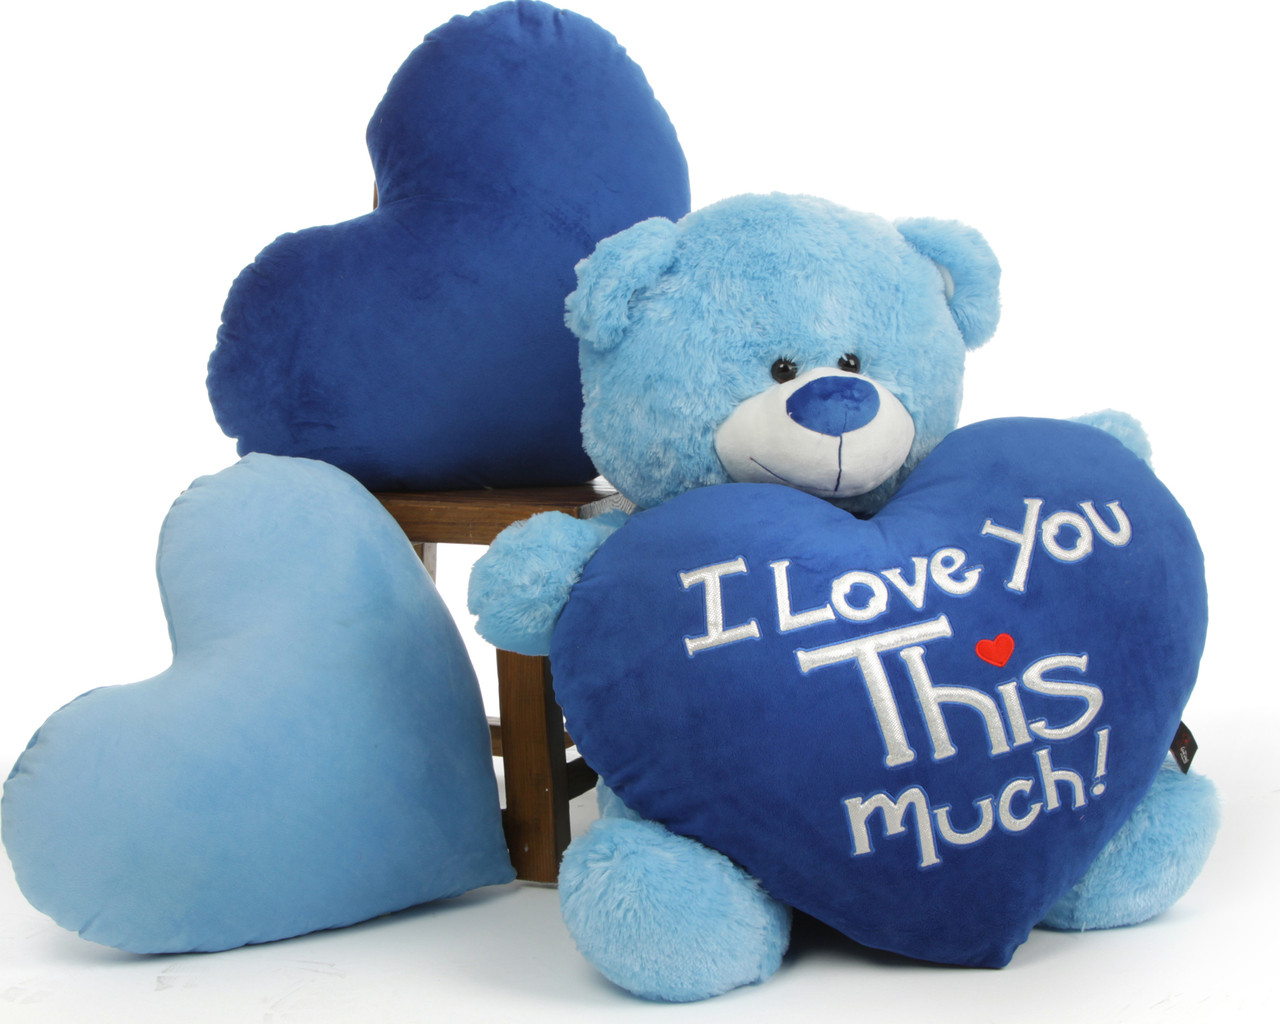 Big 3ft light blue teddy bear marty shags with i love you heart adorable big 35in light blue teddy bear marty shags with huge i love you this much plush royal blue heart altavistaventures Image collections